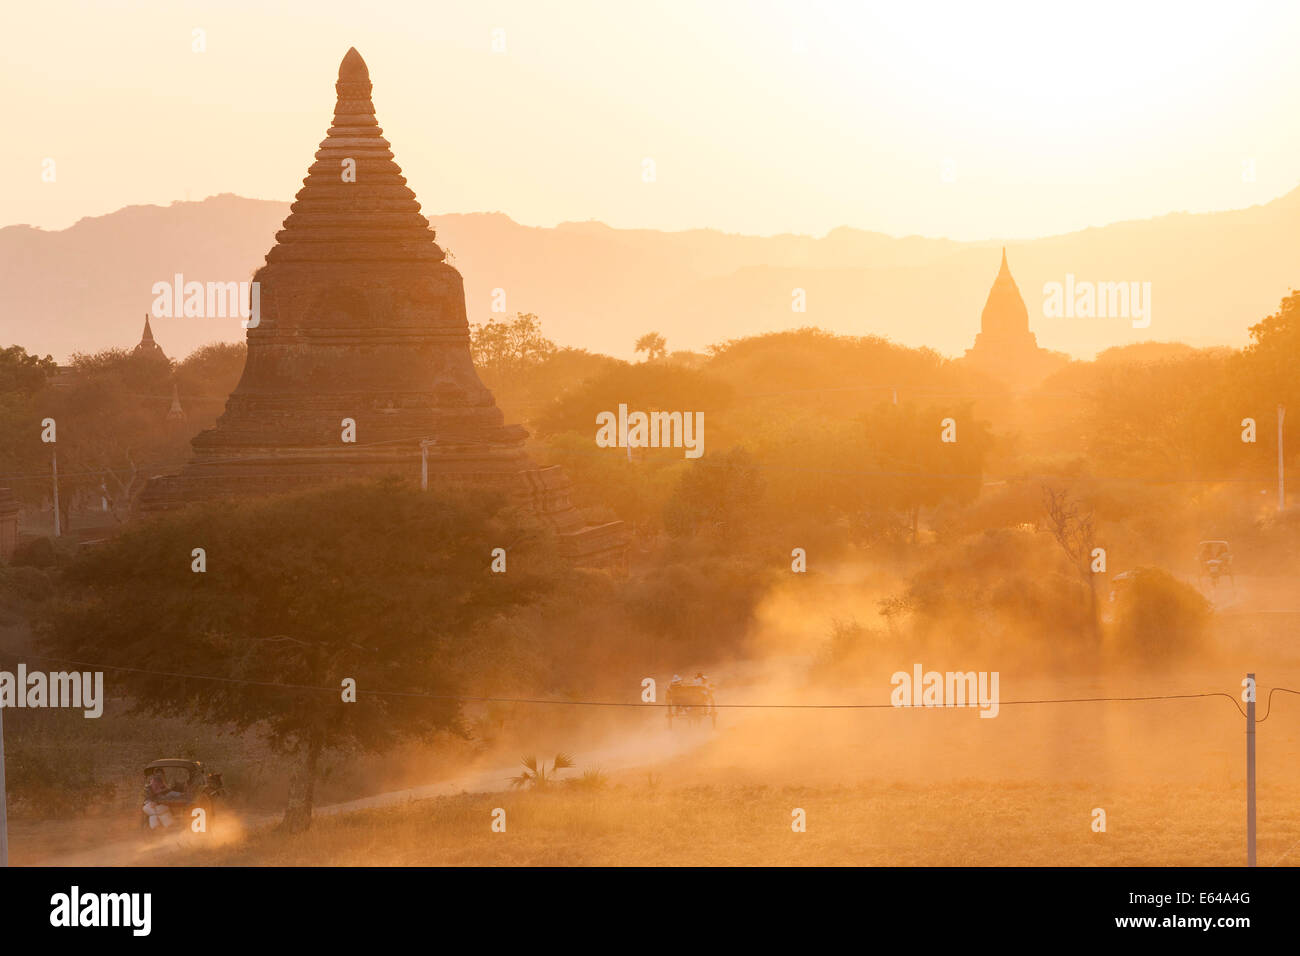 Ancient temple city of Bagan (also Pagan) at sunset, Myanmar (Burma) - Stock Image